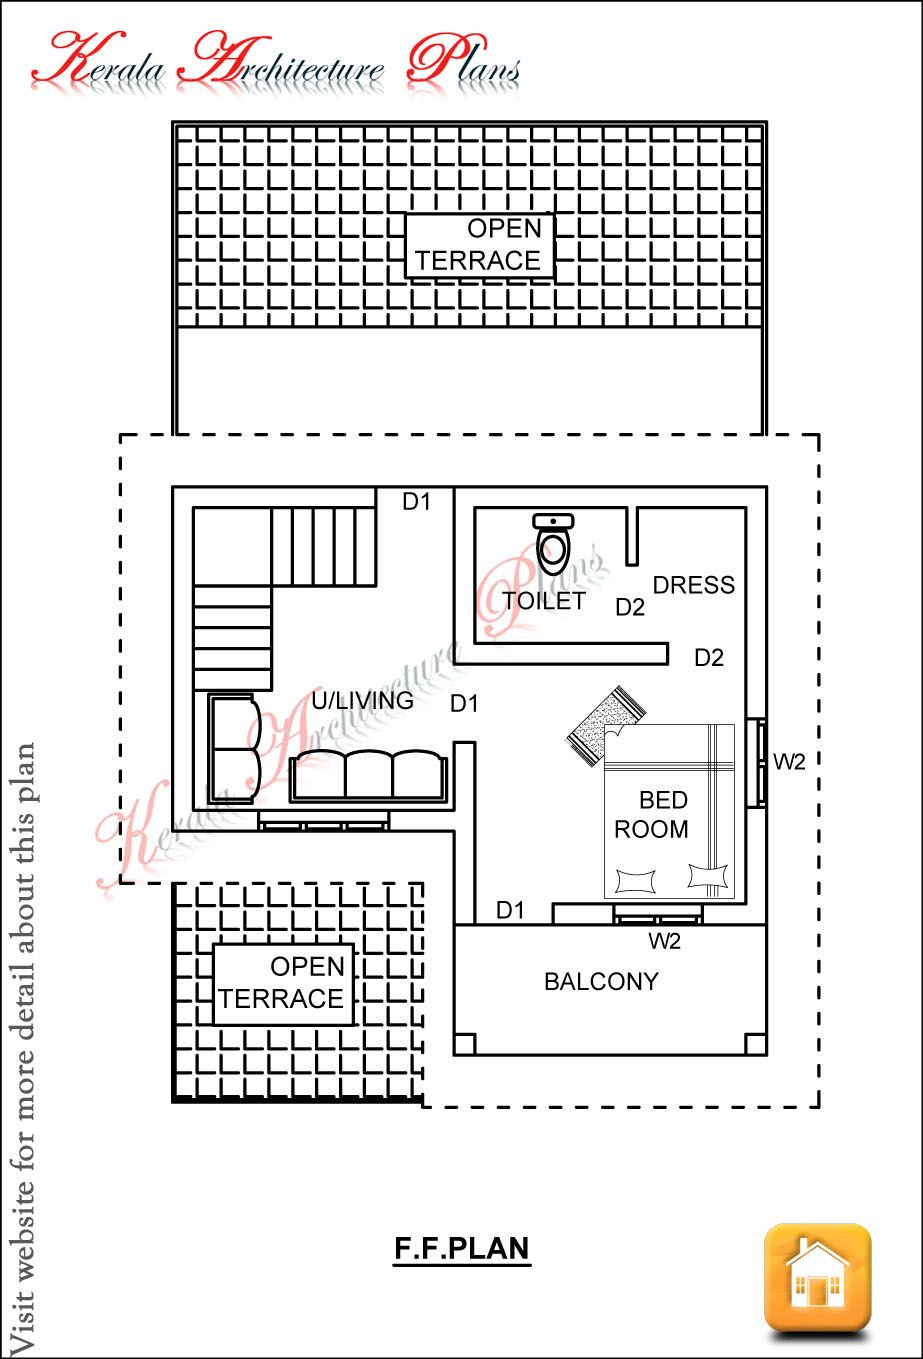 House Plans Below 800 Sq Ft Elegant Kerala House Plans 1200 Sq Ft for A 3 Bedroom House18 Lakhs